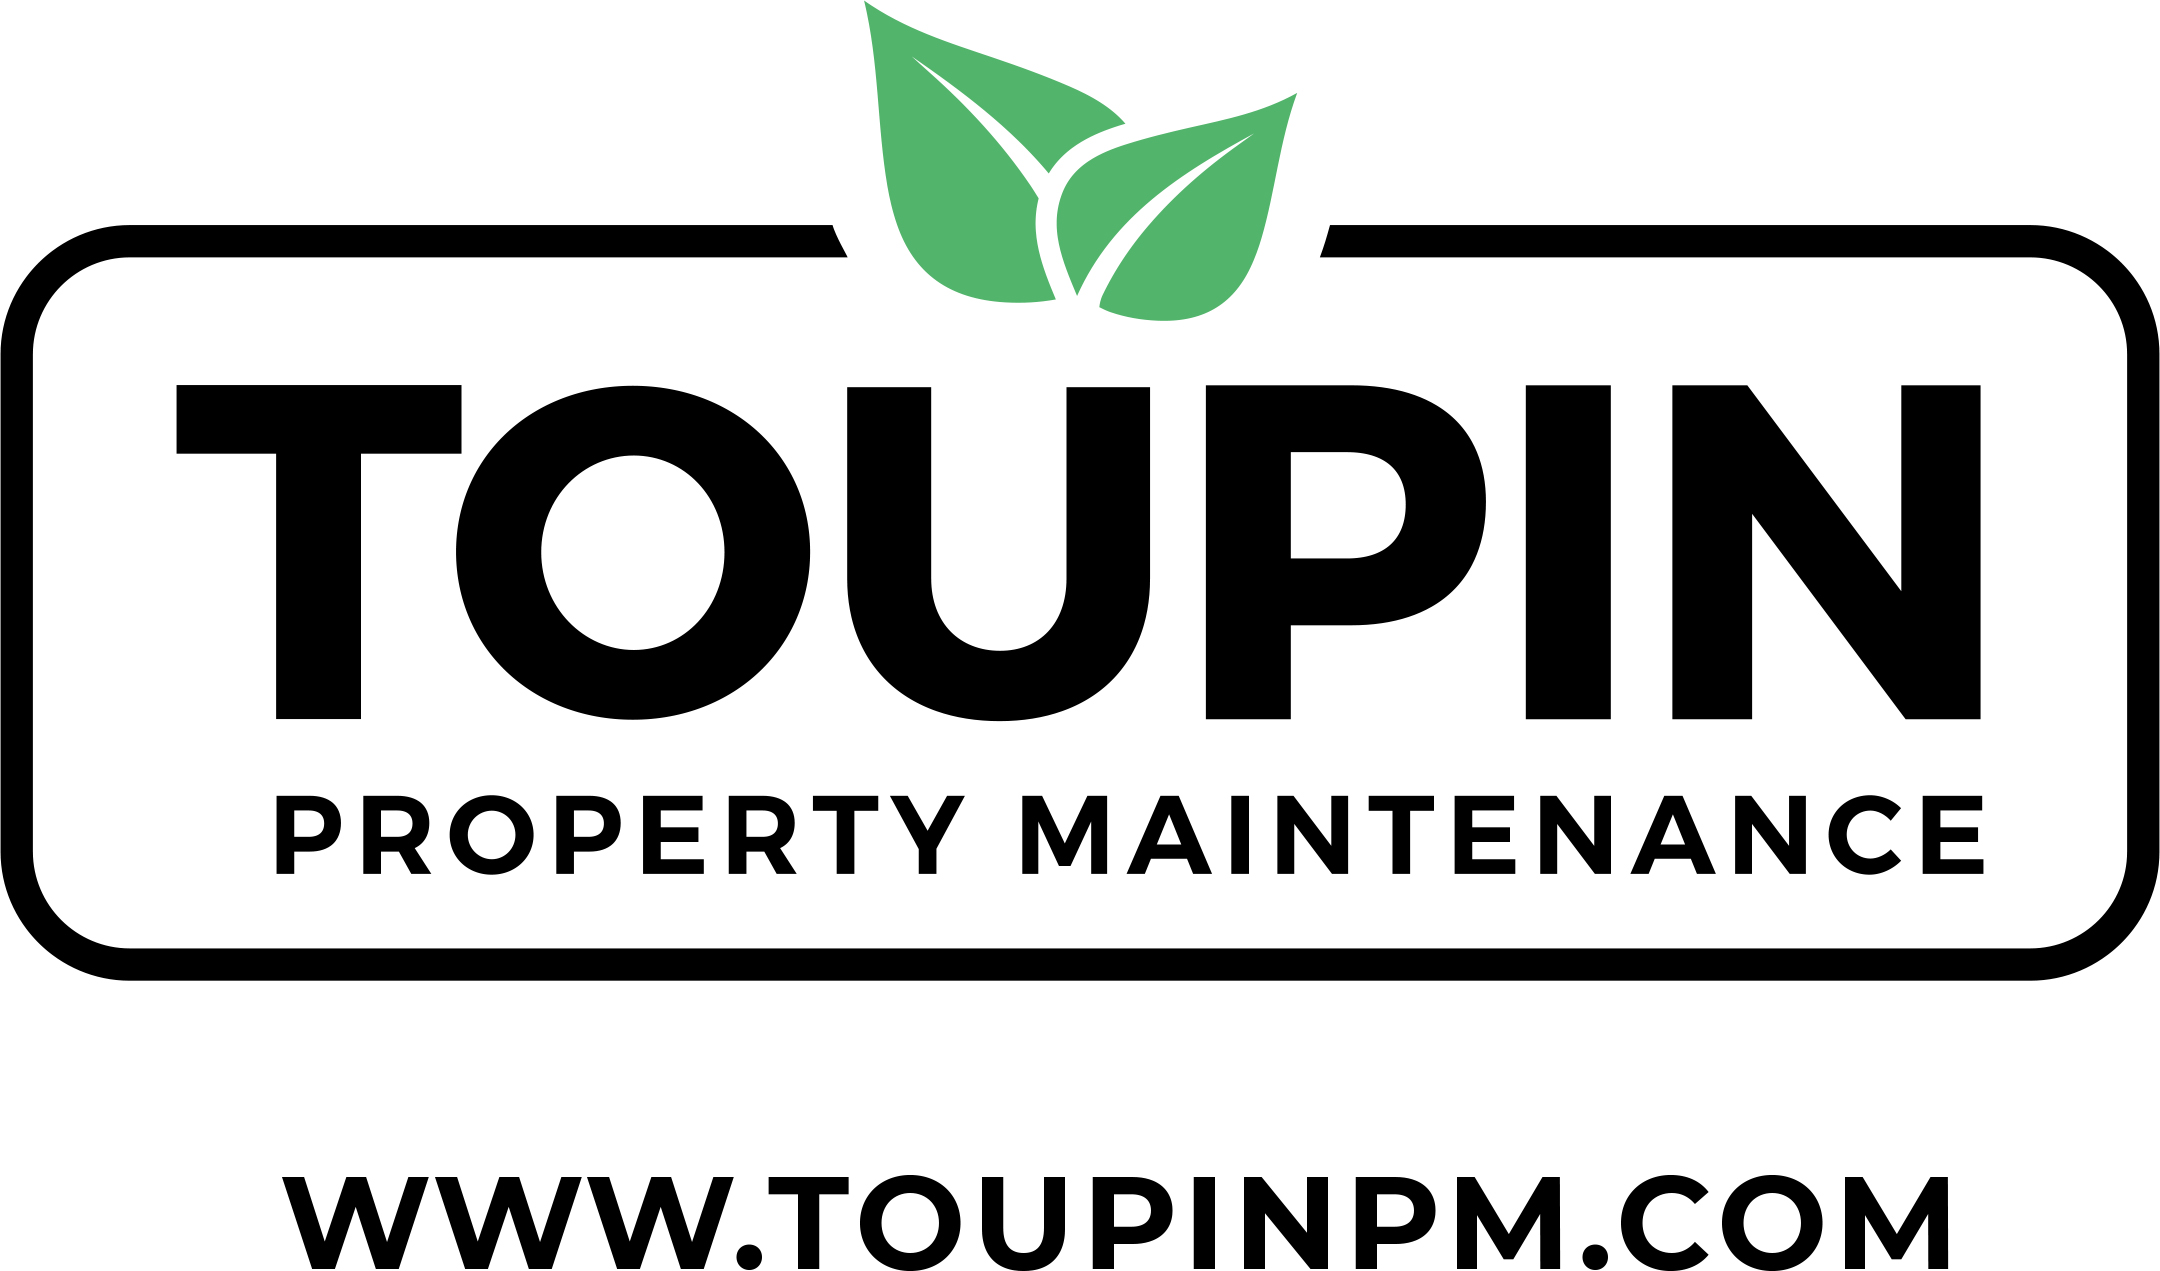 Toupin Property Maintenance